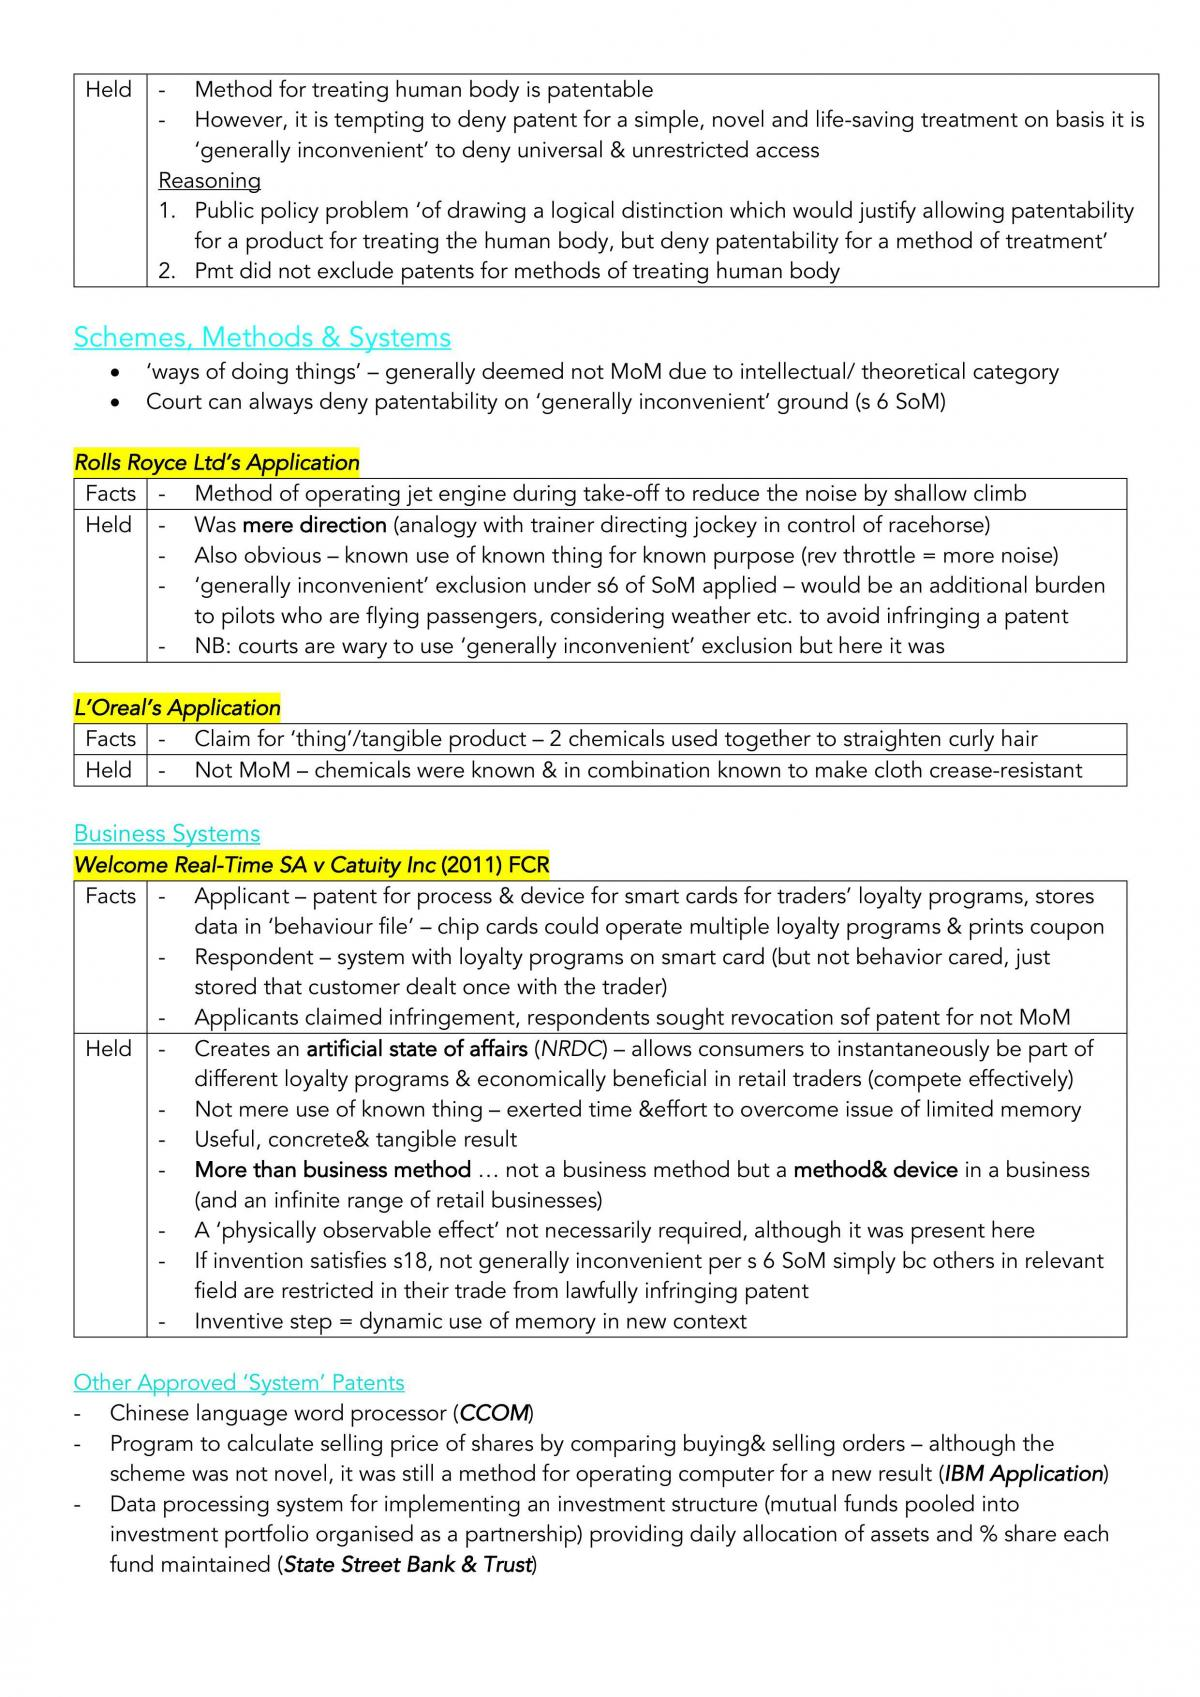 LAW4342 HD Exam Notes - Page 3